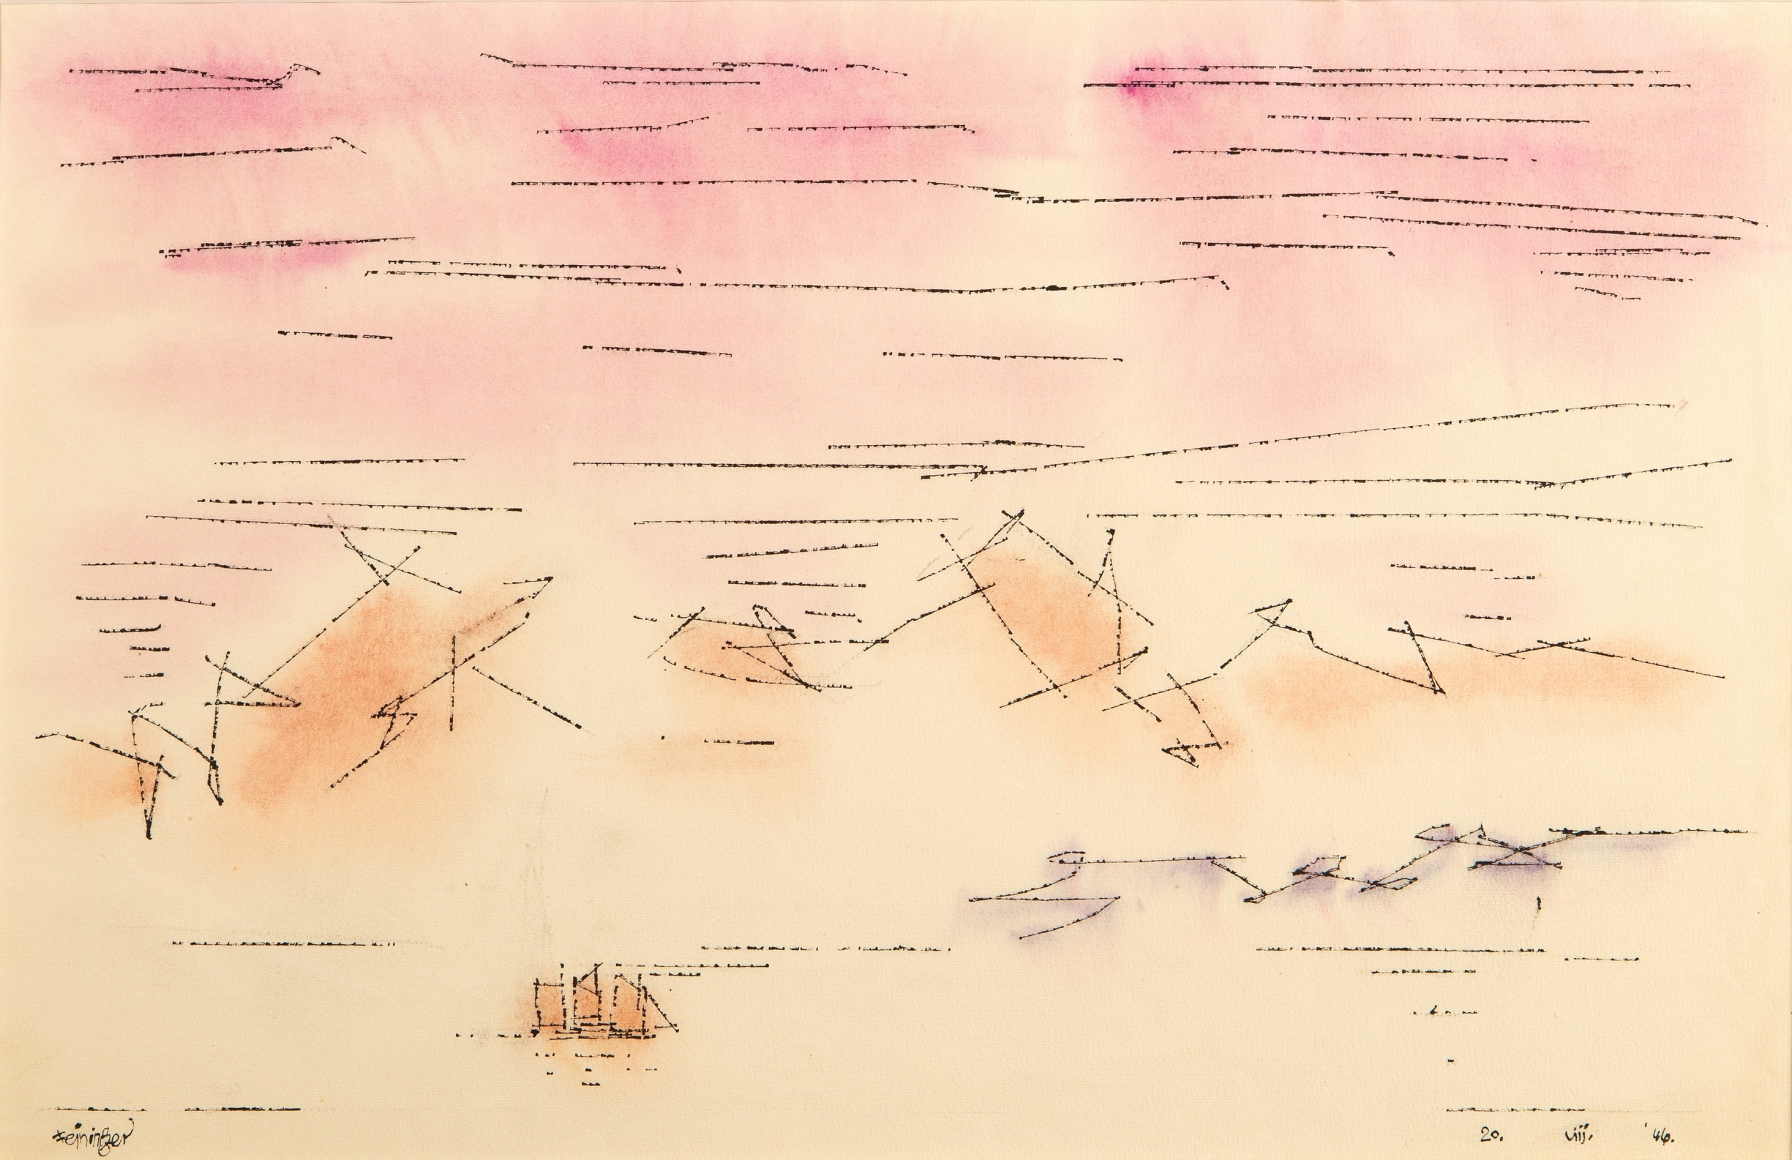 Lyonel Feininger (1871-1956), Sky Script, 1946, Watercolor and ink on paper, 12 1/2 x 18 7/8 in. (31.8 x 47.9 cm), Signed lower left: Feininger, Dated lower right: 20. VIII. '46., Titled lower center: Sky Script